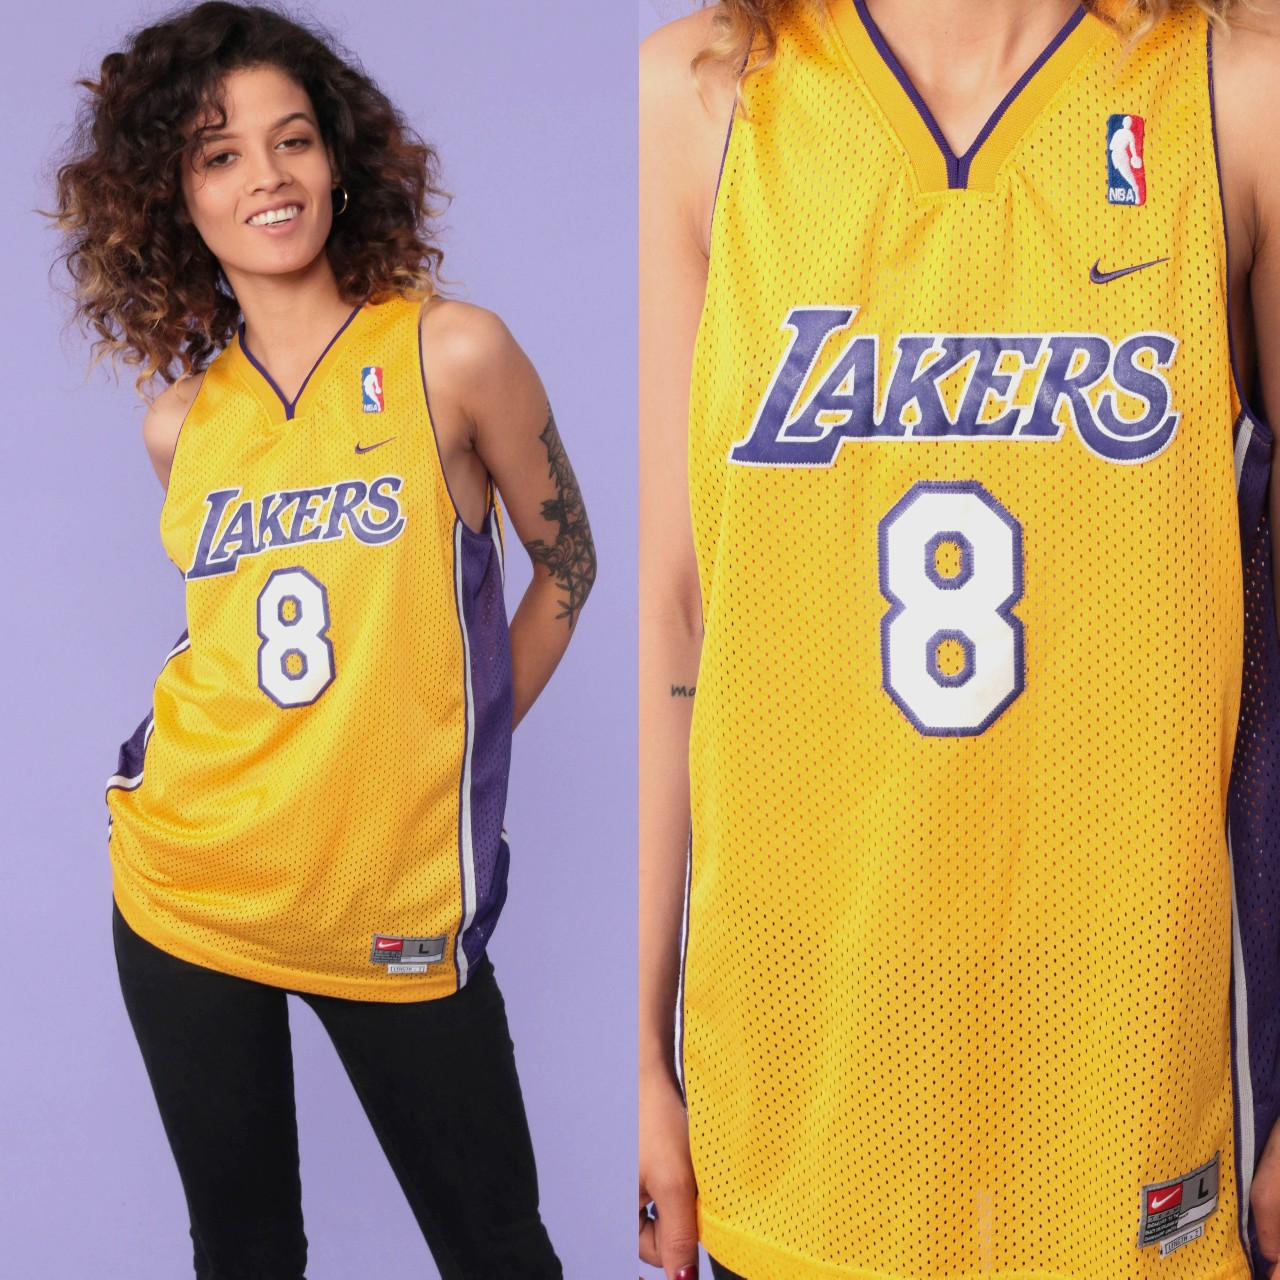 lakers jersey female bd570c